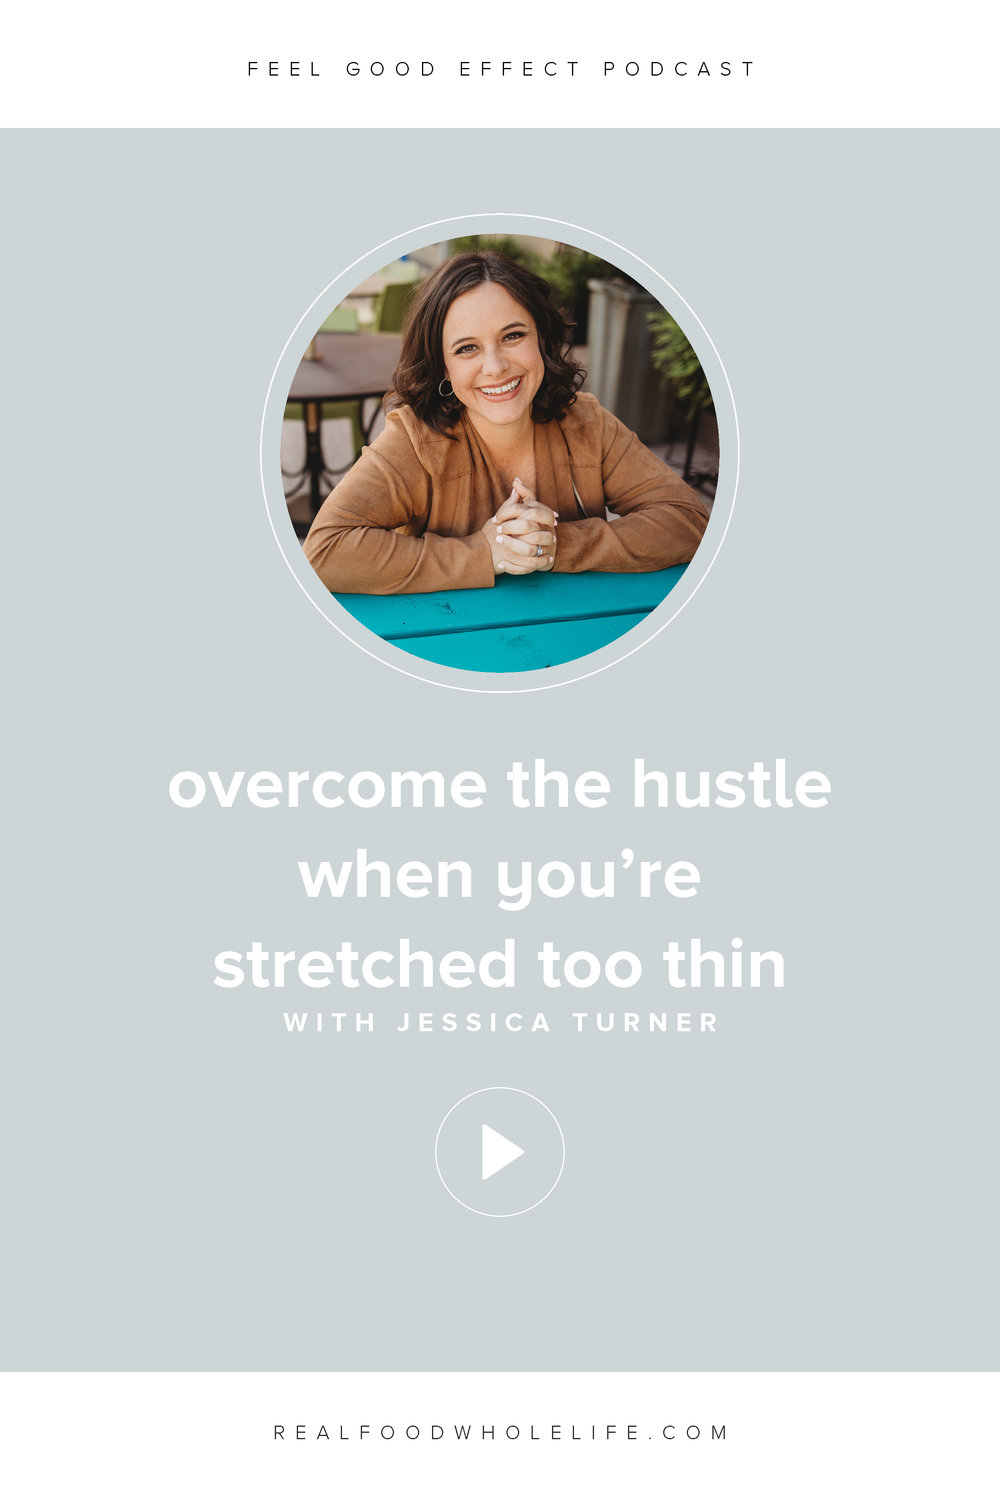 How to Overcome the Hustle When You're Stretched Too Thin. Listen to this episode of The Feel Good Effect Podcast, an interview with Jessica Turner on how to overcome the hustle when you're feeling stretched too thin and how to integrate self-care into even the busiest working mother's life. #thefeelgoodeffect #podcast #gentleisthenewperfect #selfcare #workingmoms